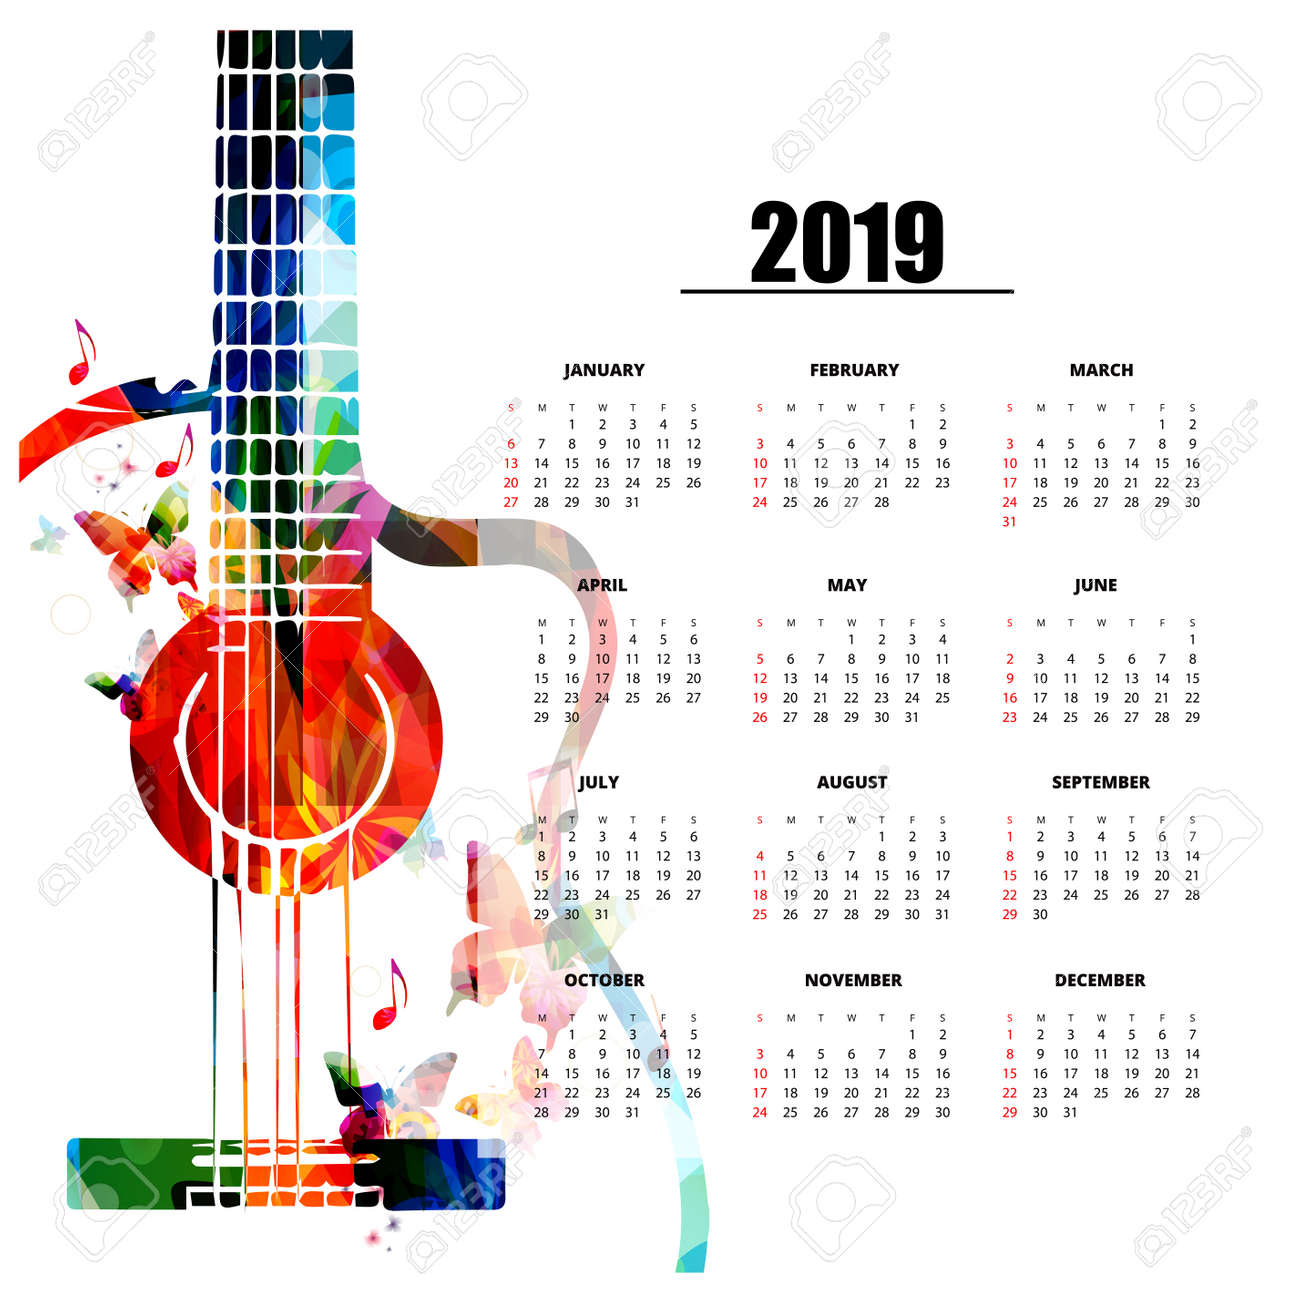 Music Calendar 2019 Calendar Planner 2019 Template With Colorful Guitar. Music Themed